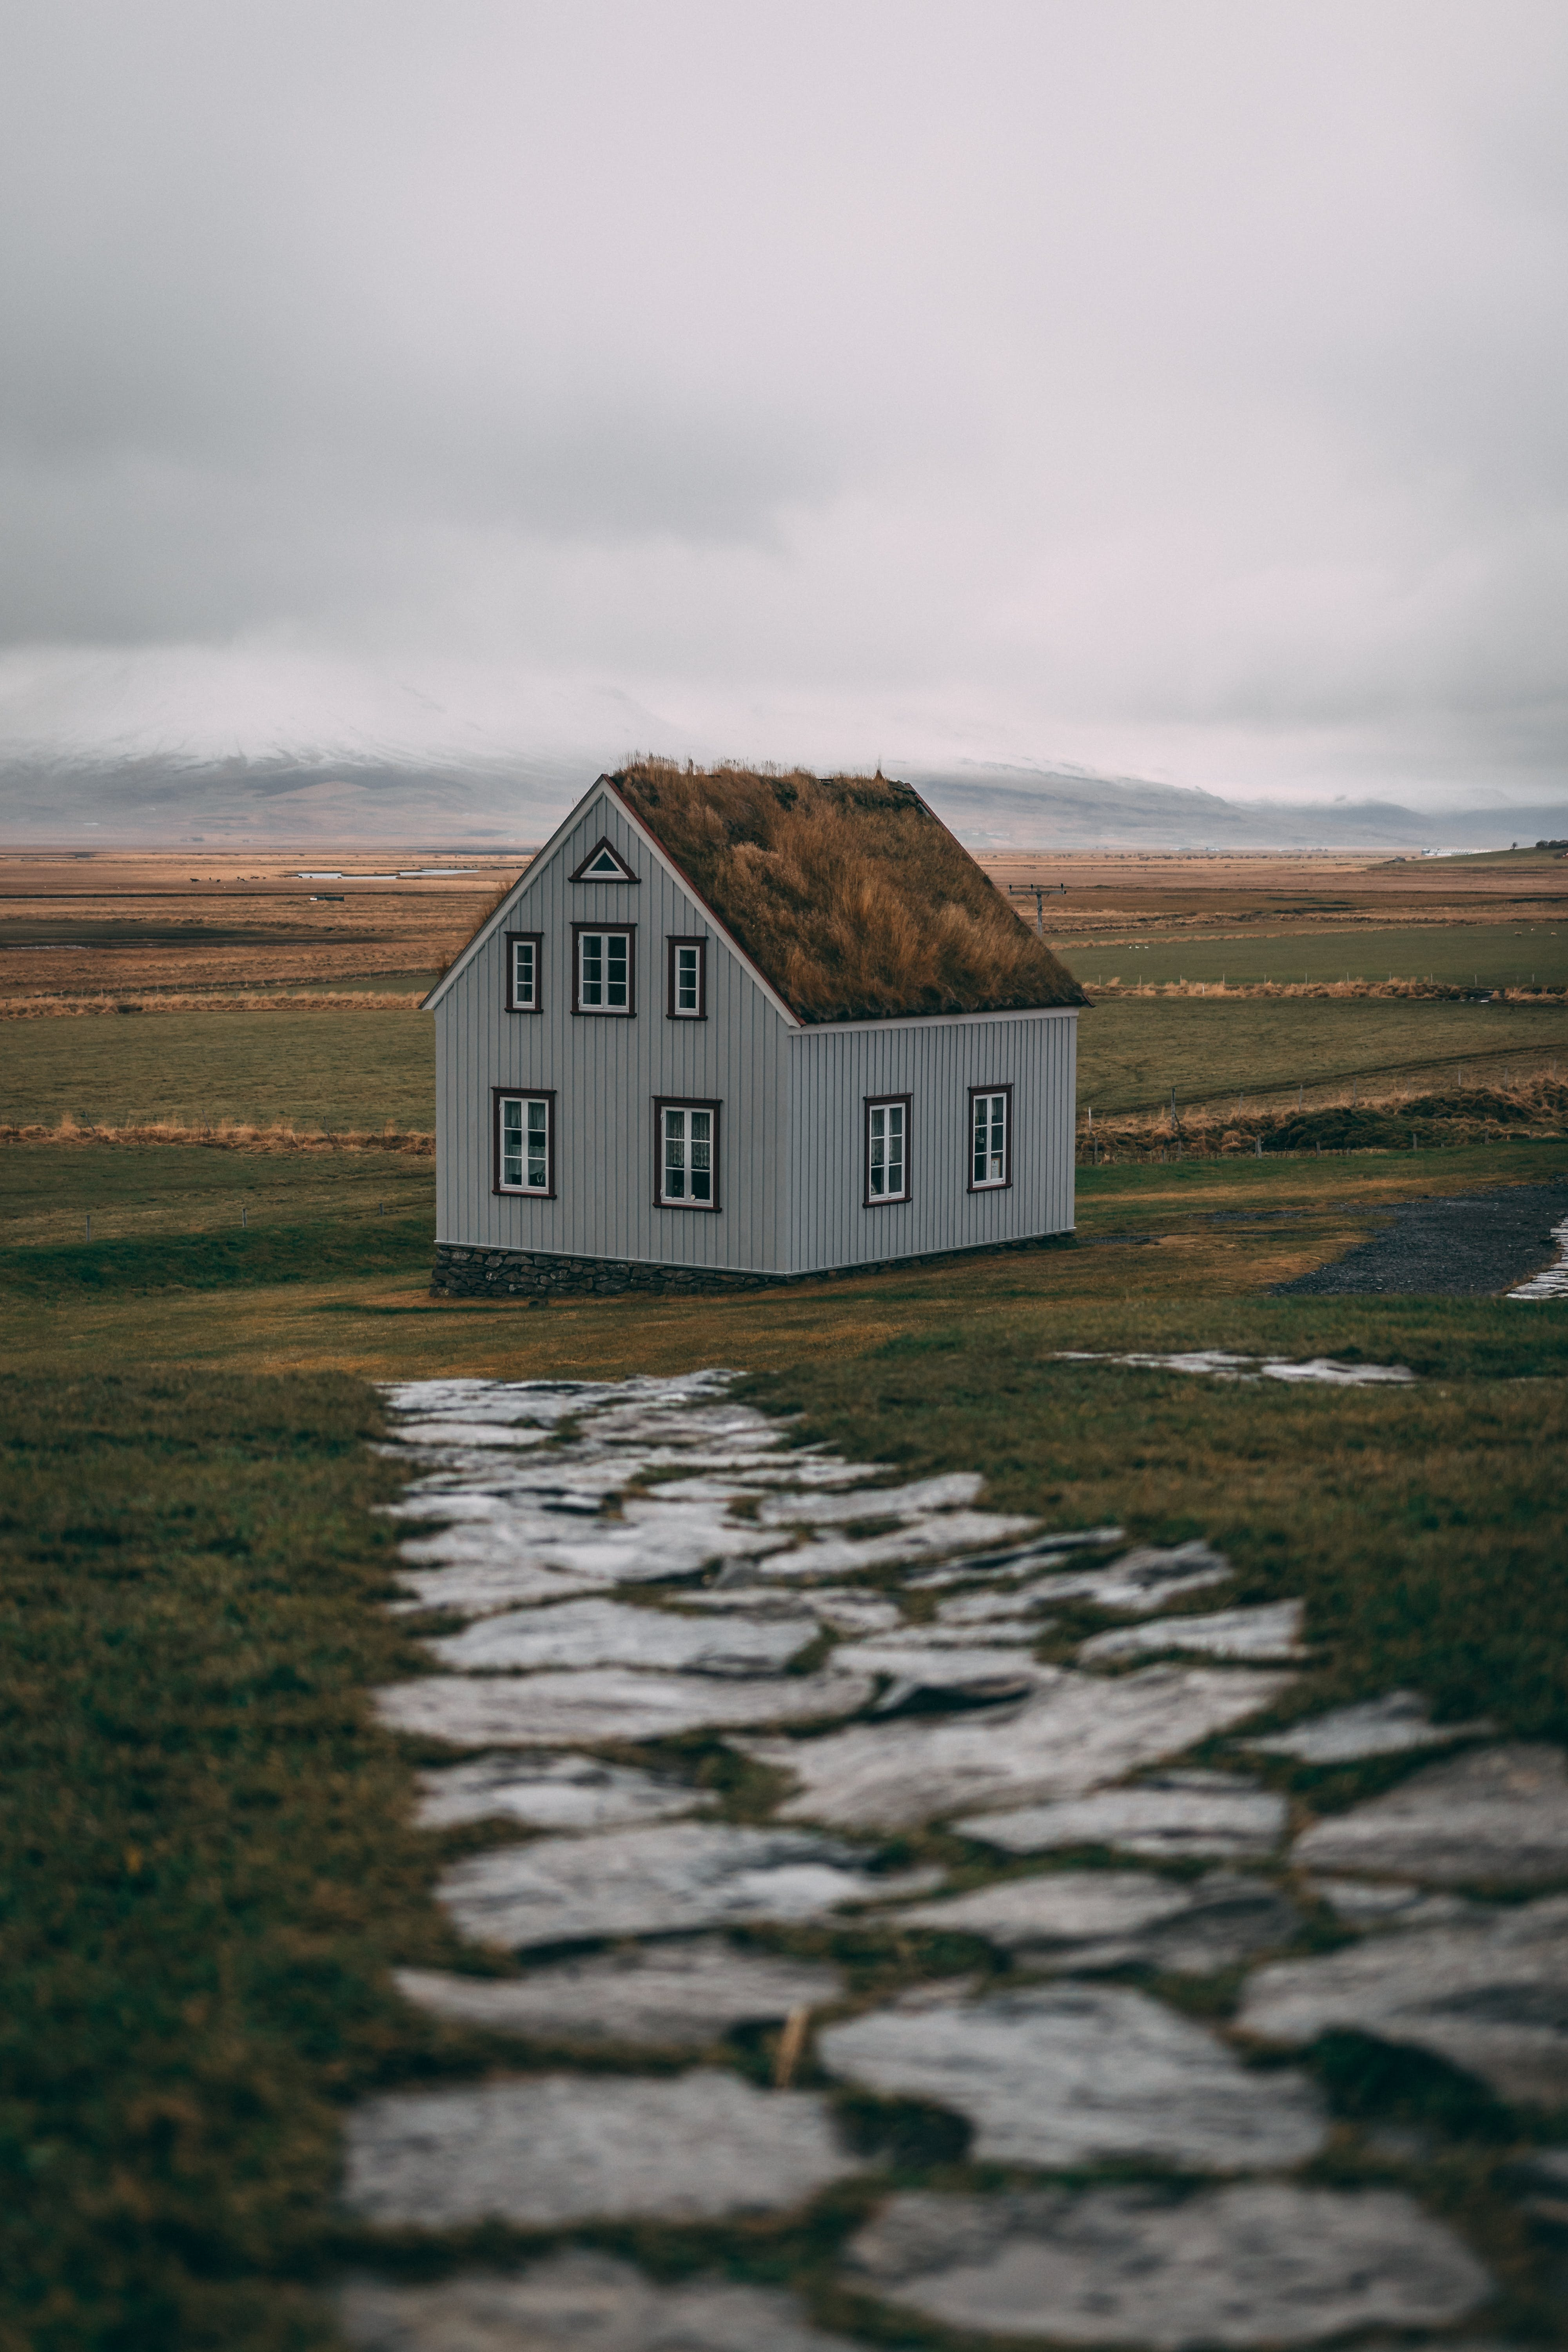 House At Green Field